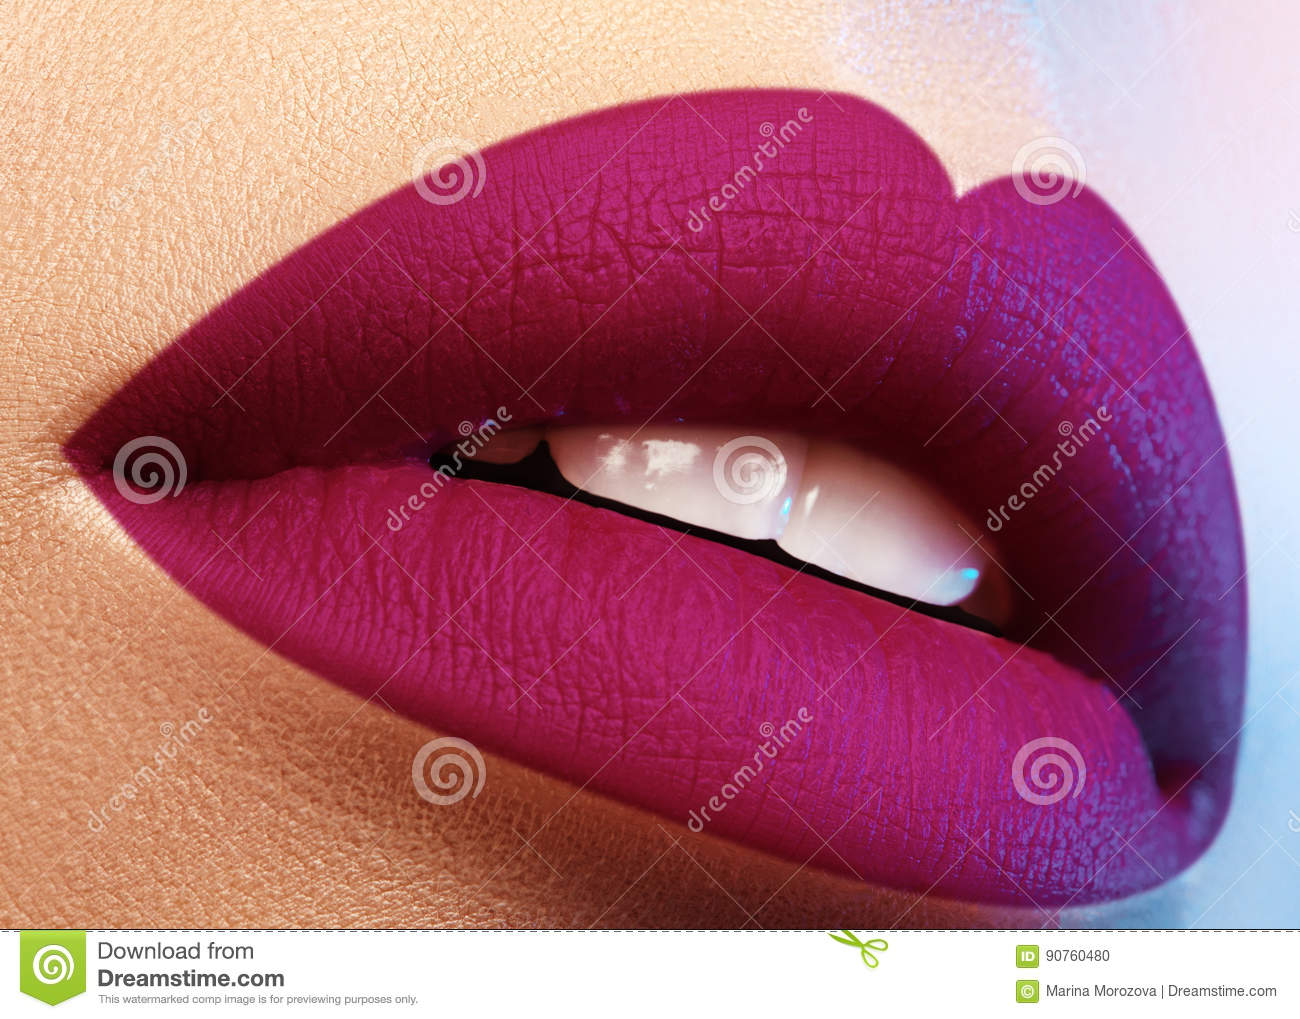 Cosmetics, makeup. Bright lipstick on lips. Closeup of beautiful female mouth with purple lip makeup. Part of face